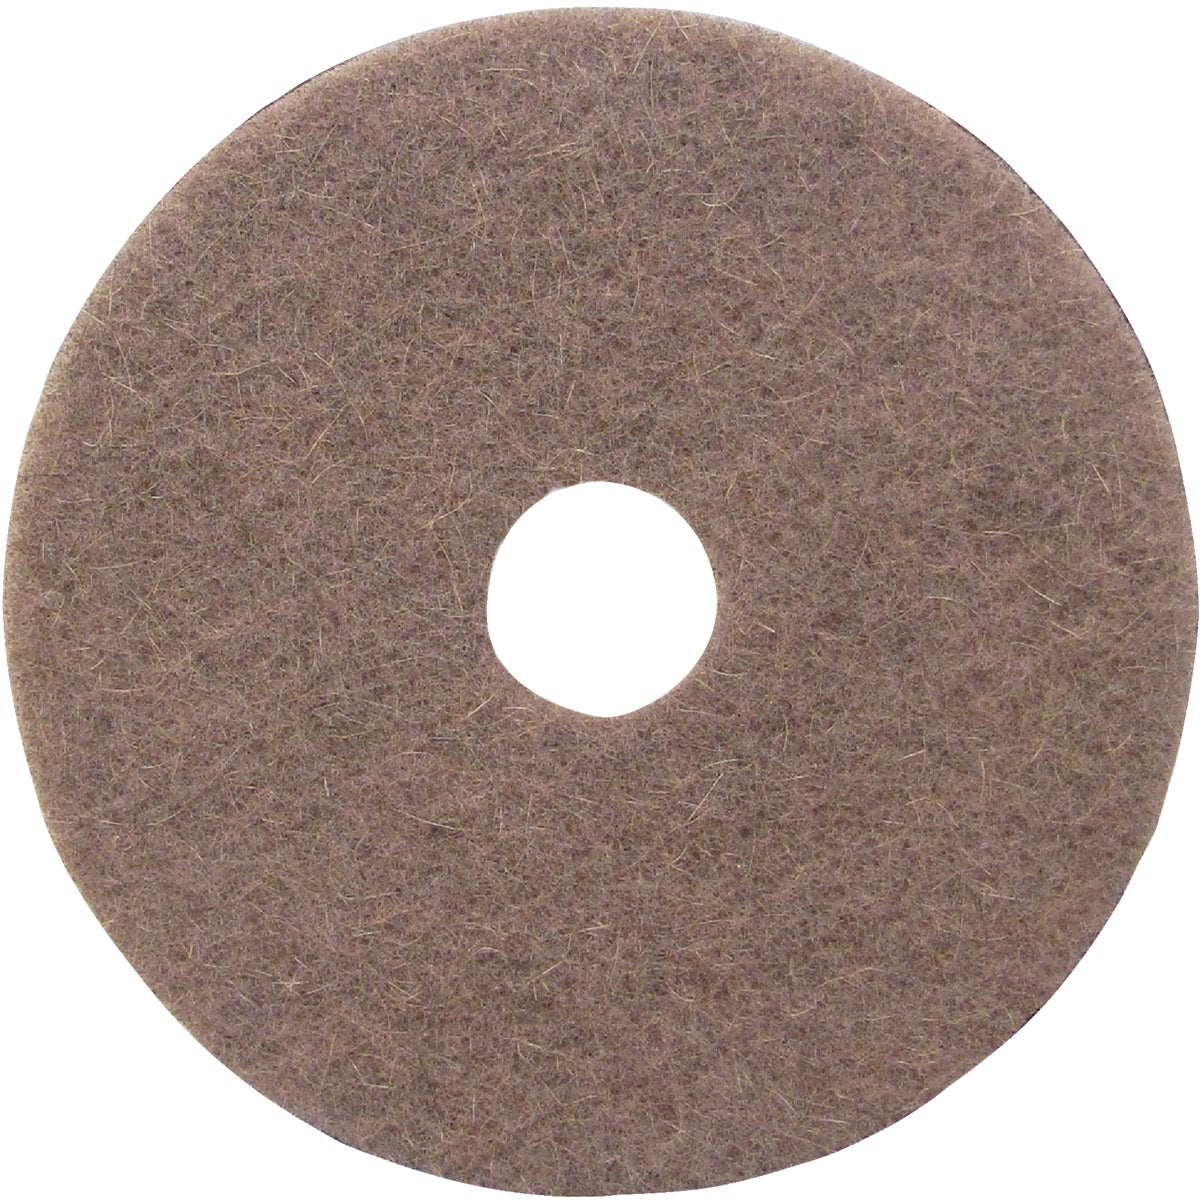 "20"" NATURAL BUFFING PAD - TKL20N by Lundmark Wax Co"